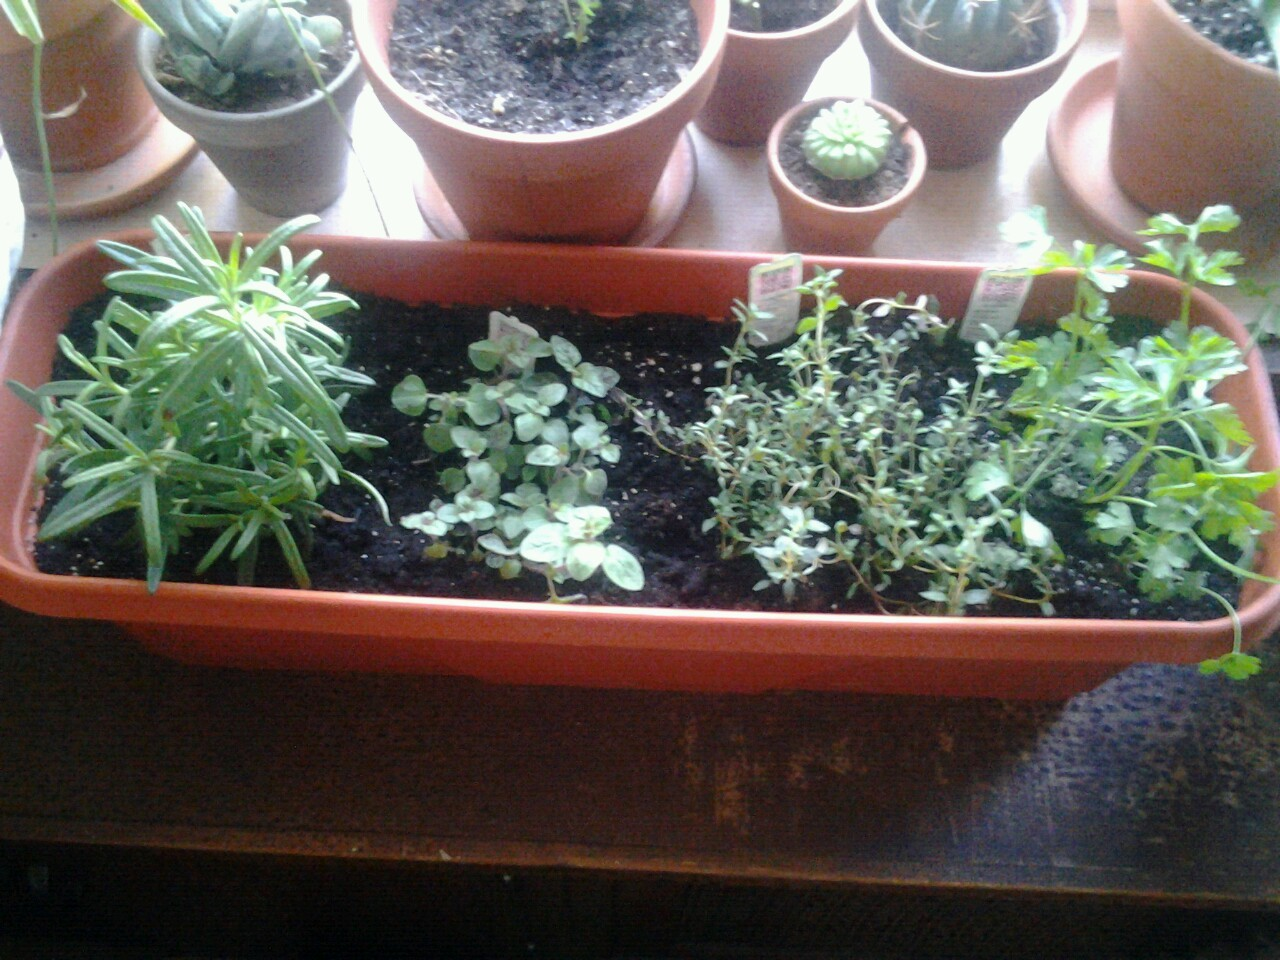 Herb garden (taken with cell phone)